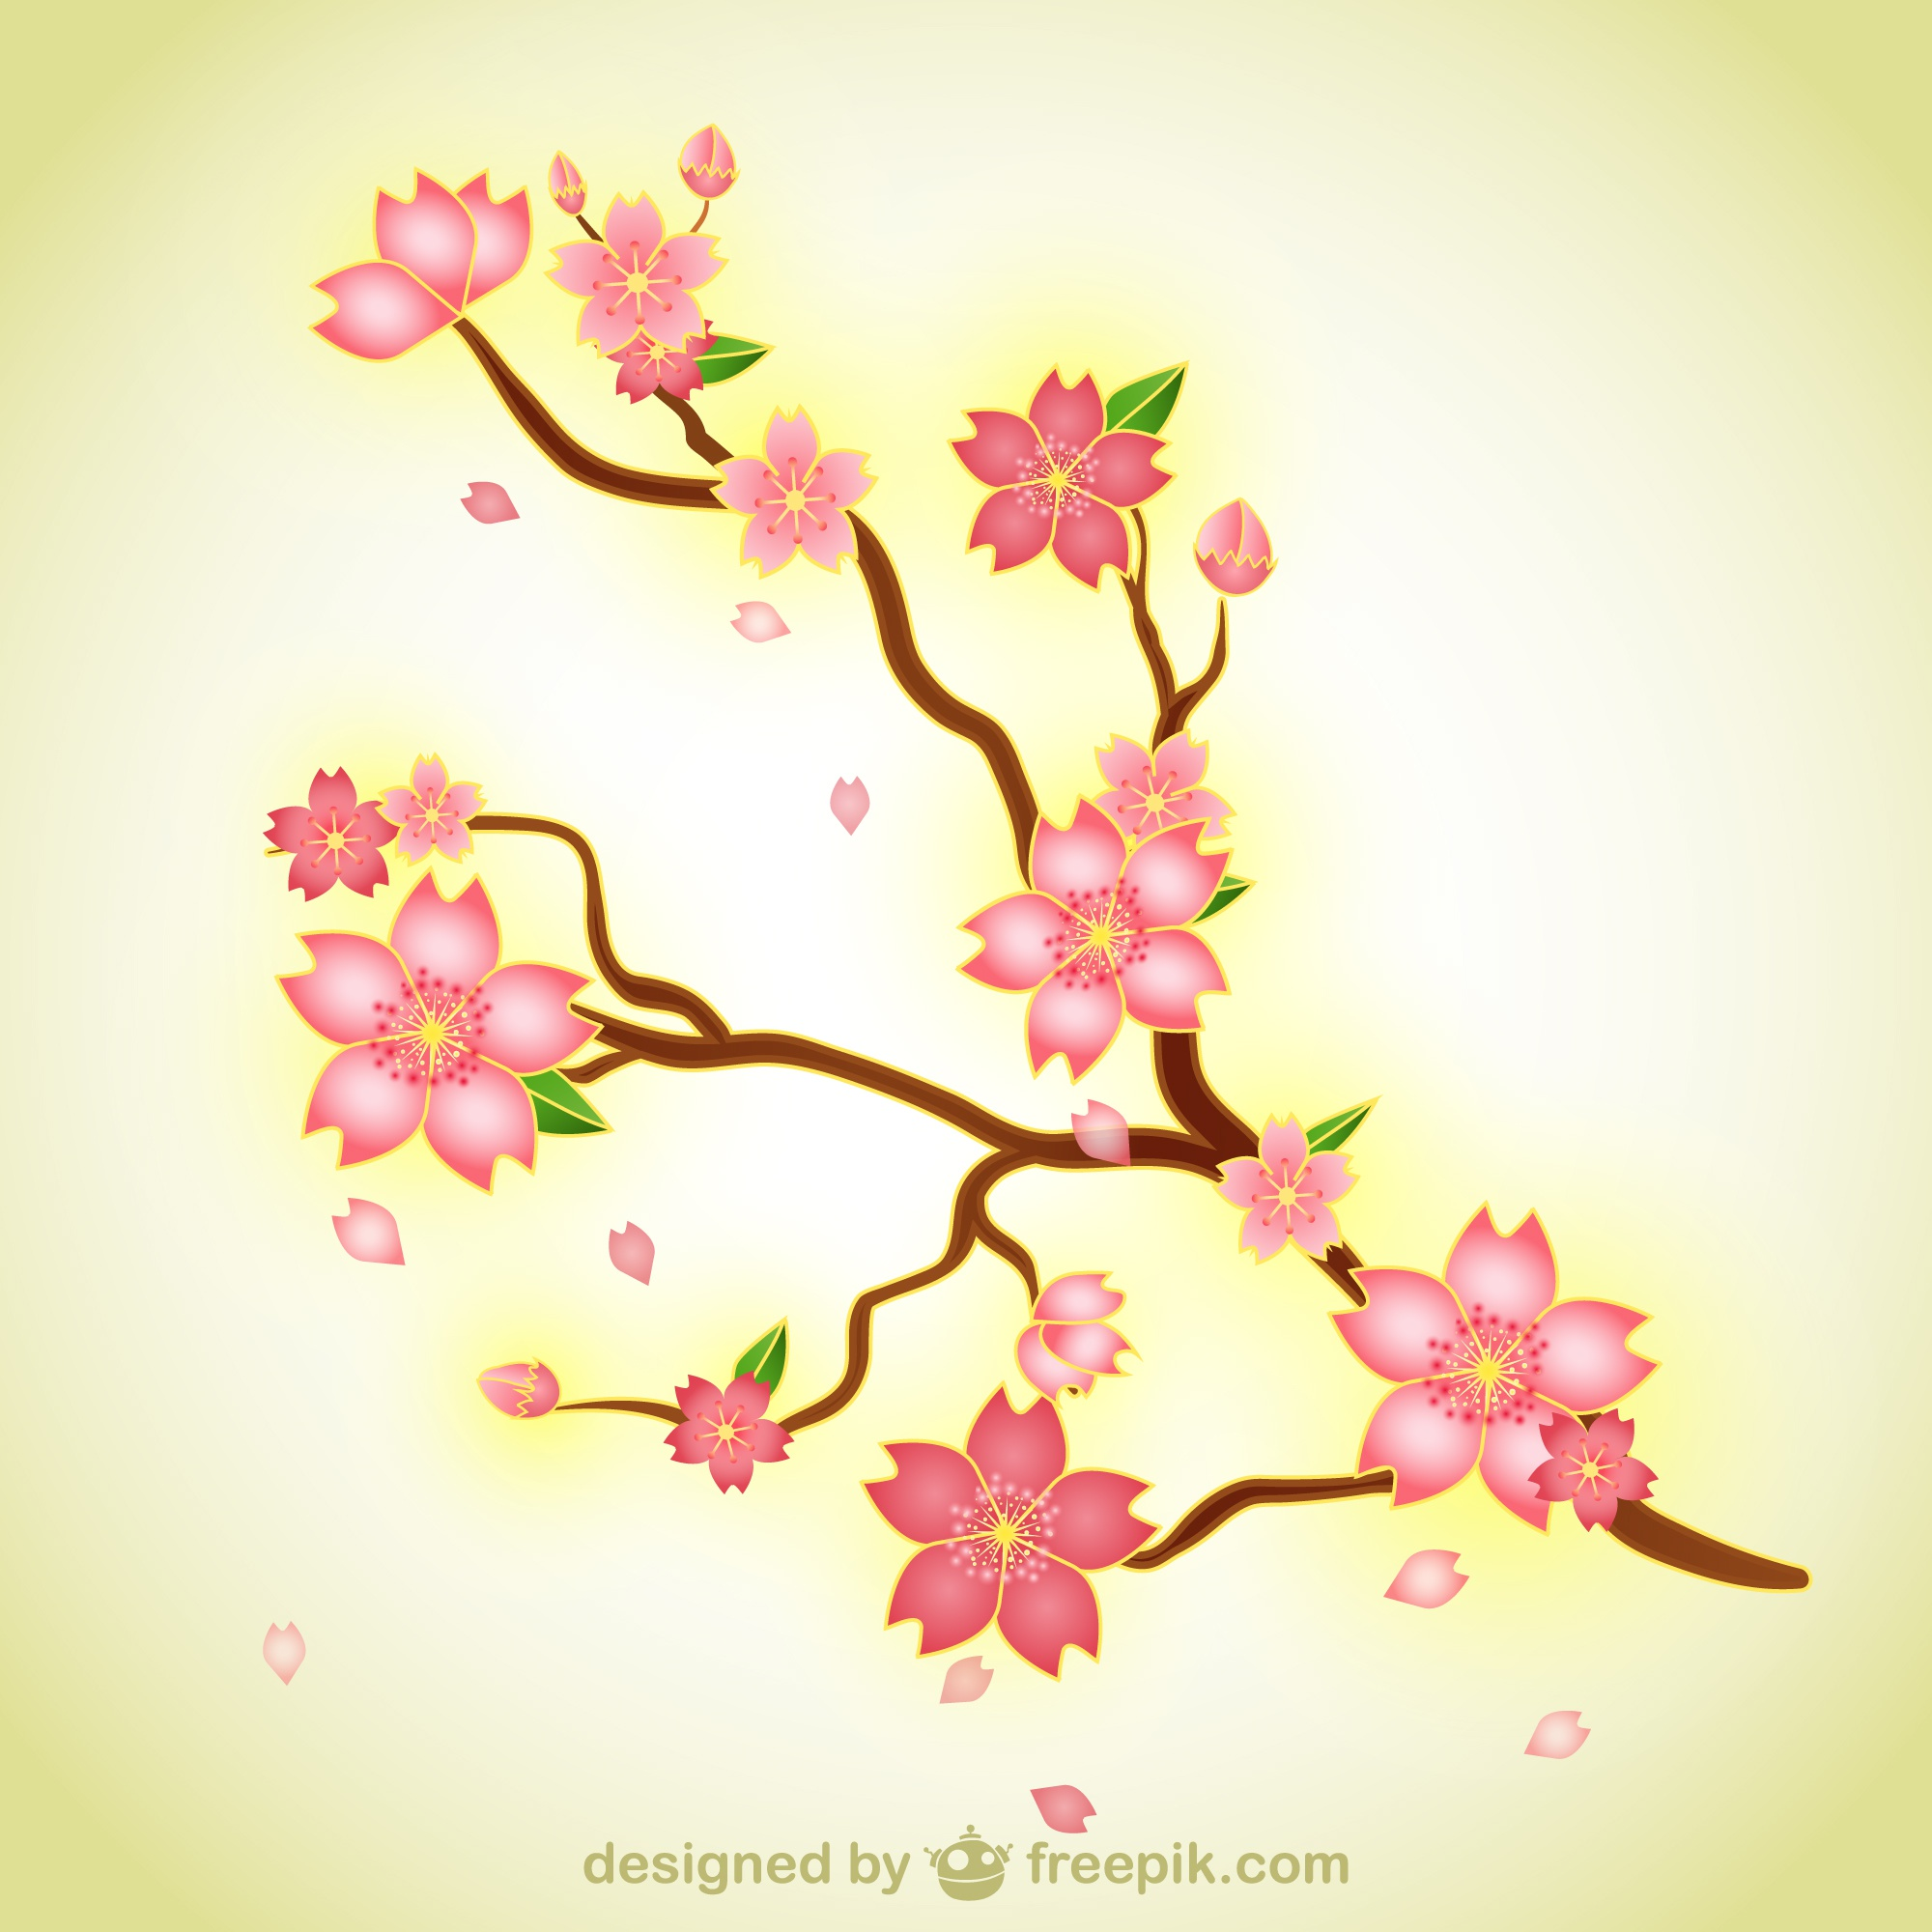 Branch with flowers illustration